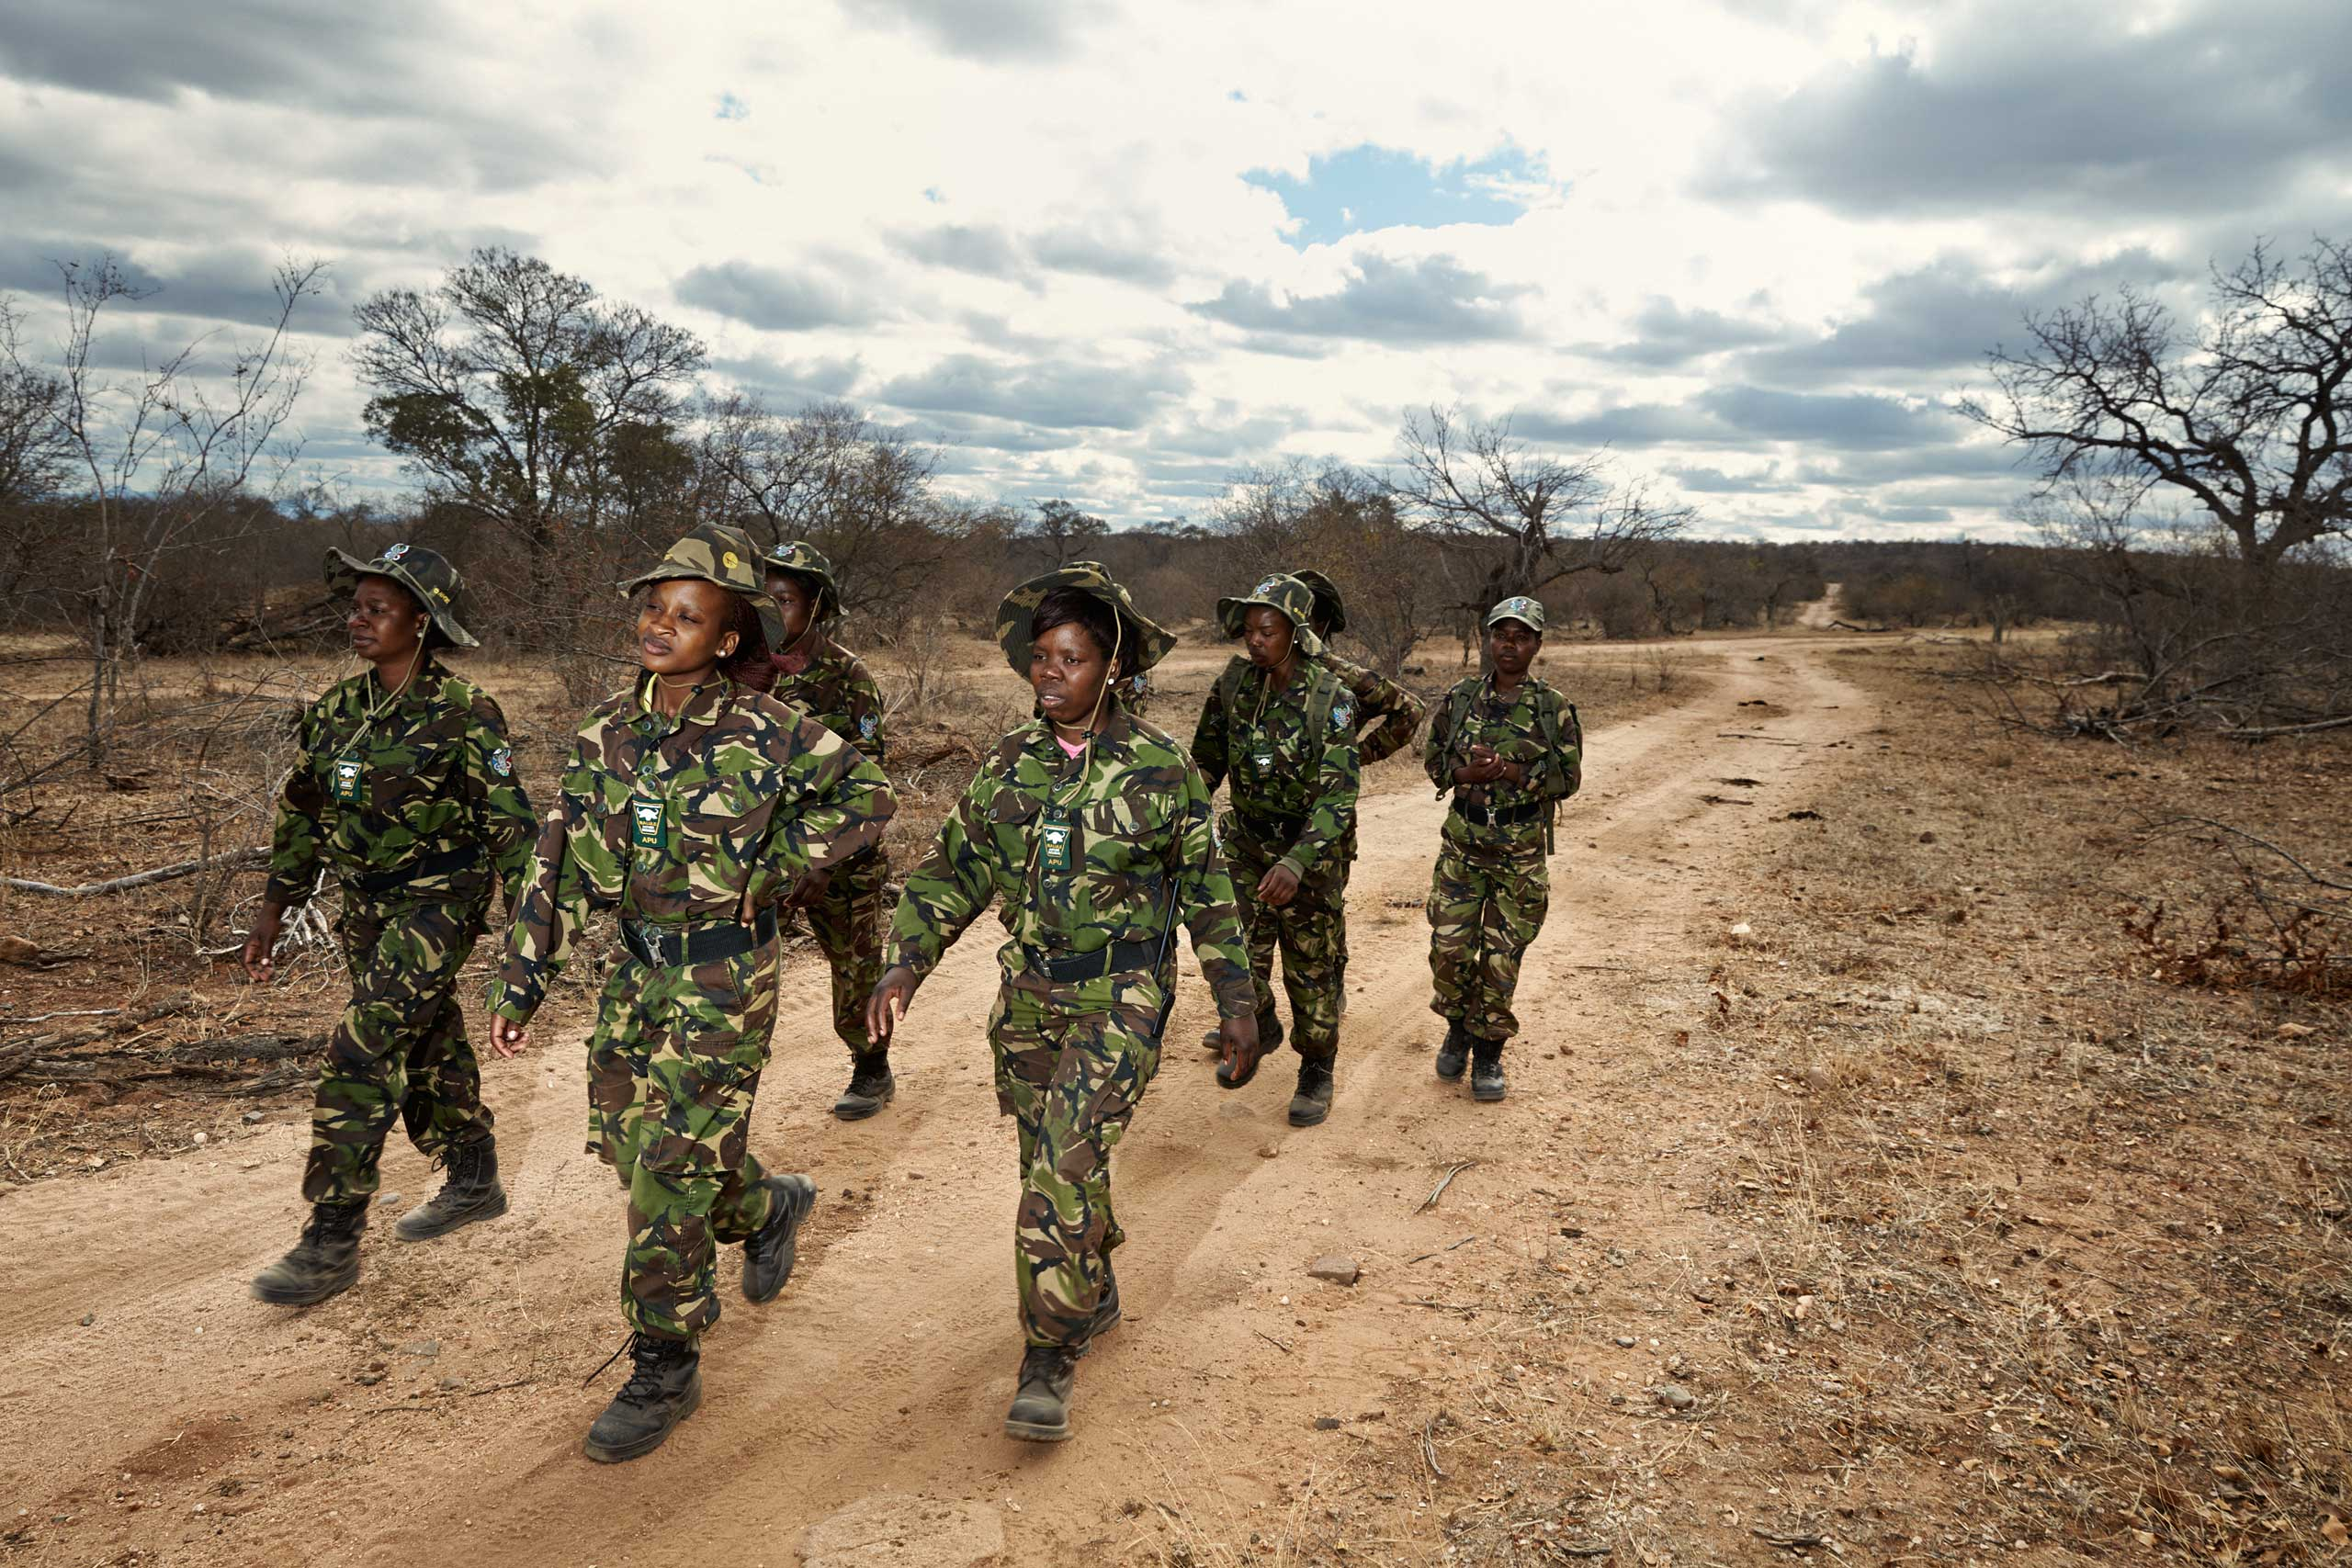 Black Mambas on patrol in Balule Nature Reserve, in northern South Africa.